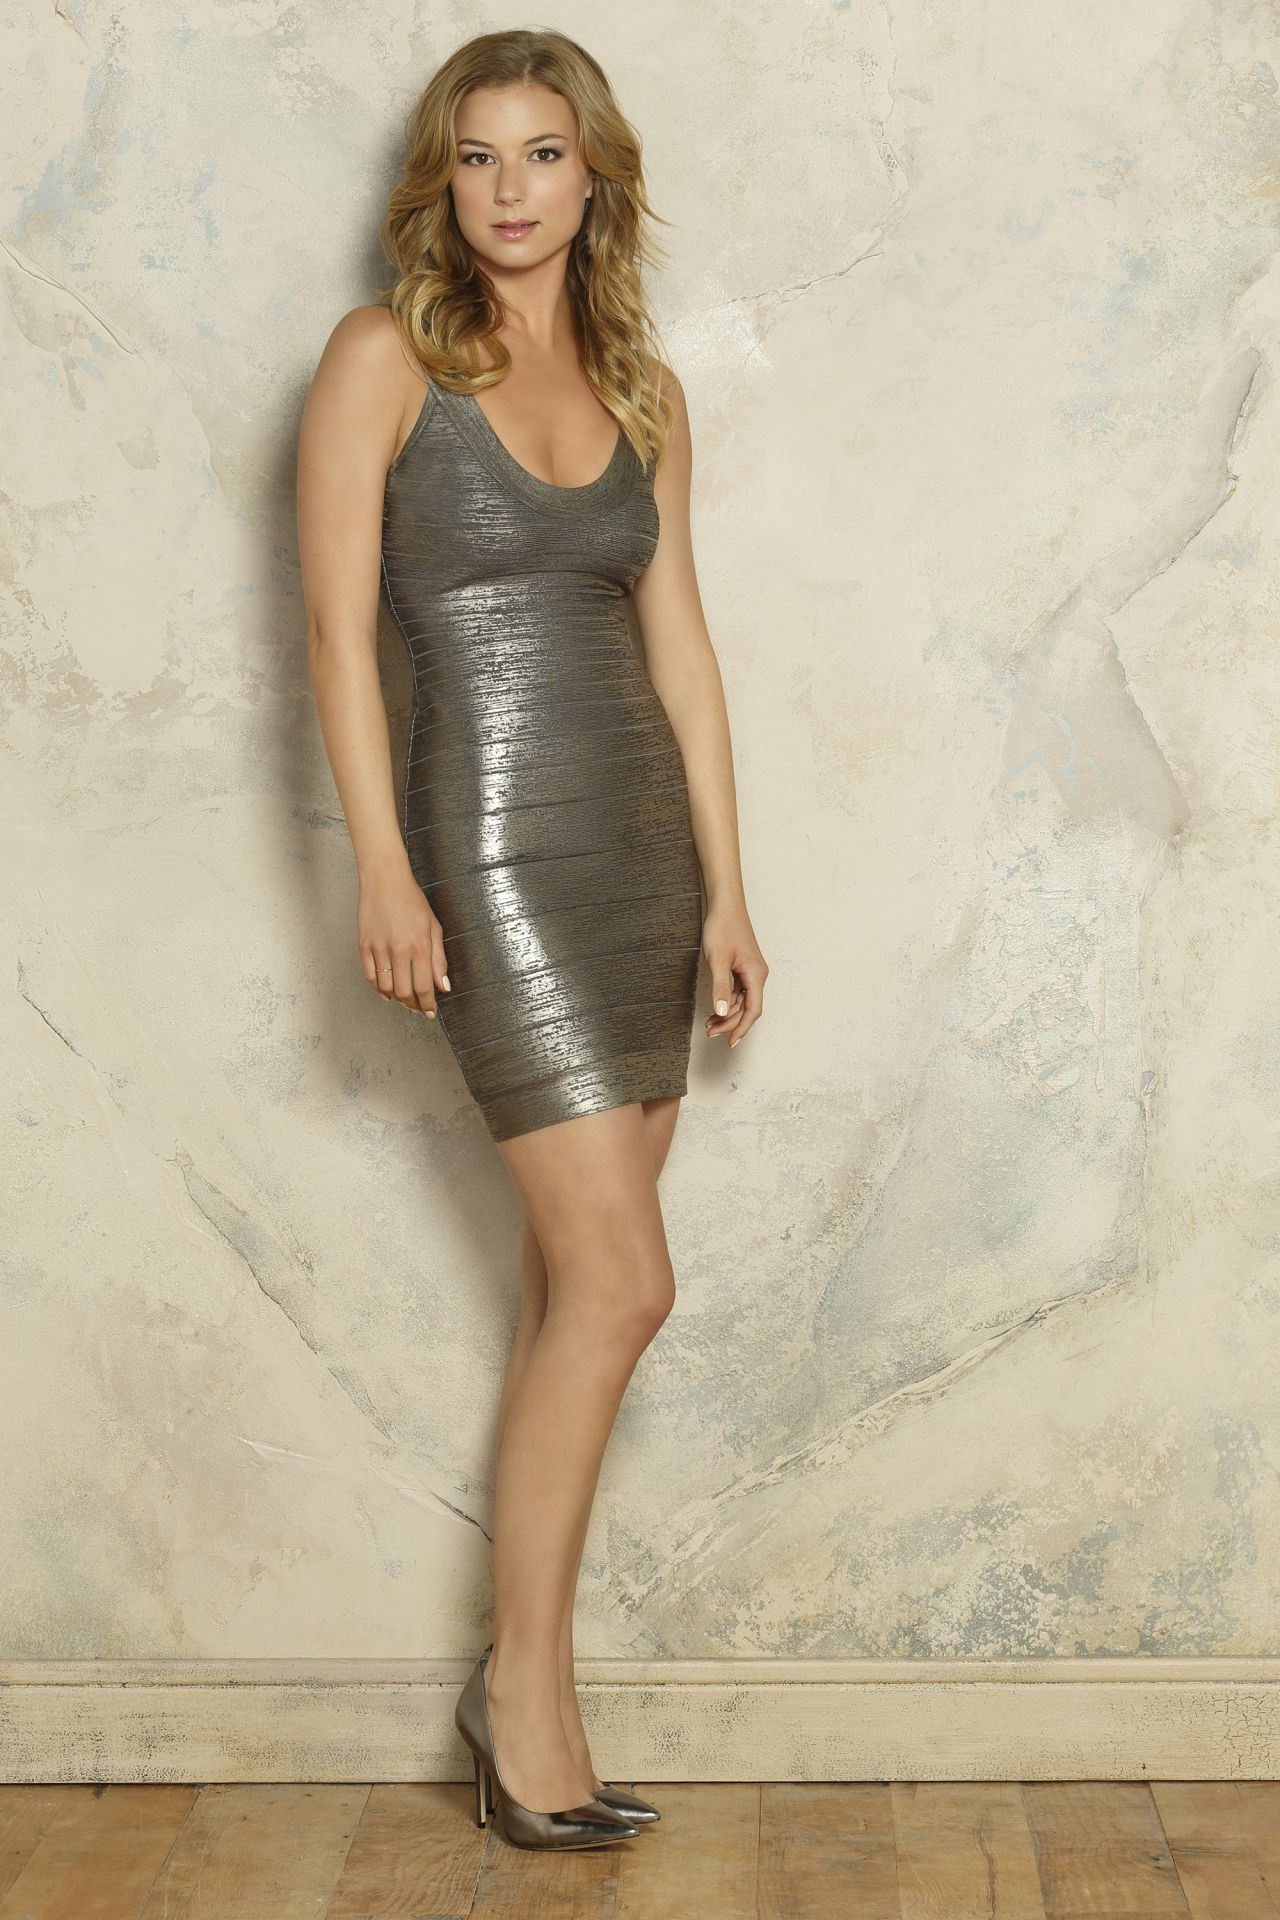 Emily Vancamp Revenge Tv Series Season 3 Promoshoot